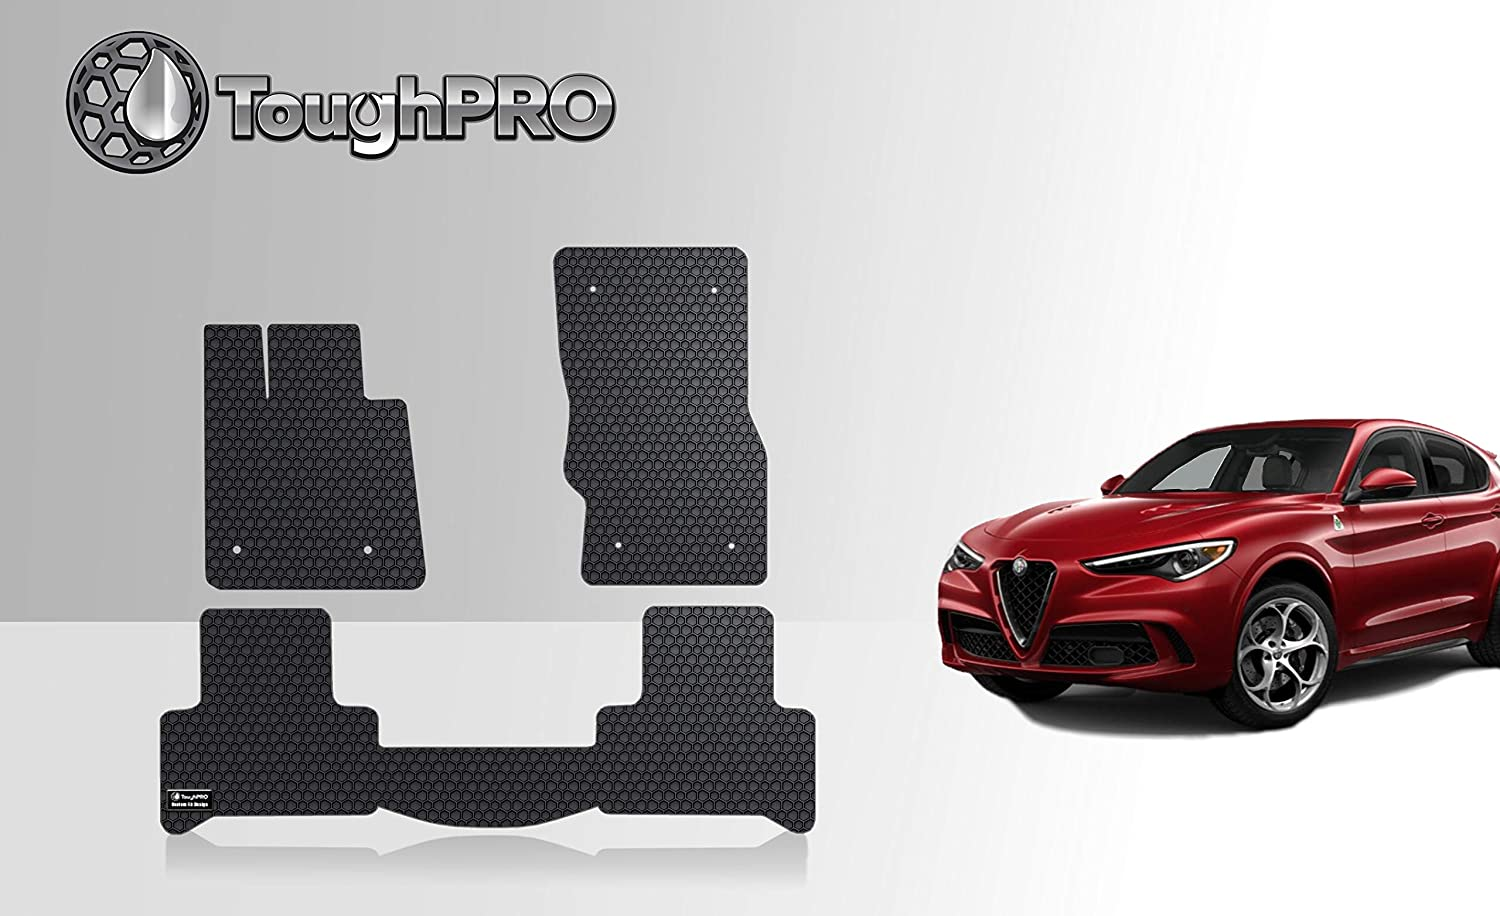 ToughPRO Floor Mats Set (Front Row + 2nd Row) Compatible with Alfa Romeo Stelvio - All Weather - Heavy Duty - (Made in USA) - Black Rubber - 2018, 2019, 2020